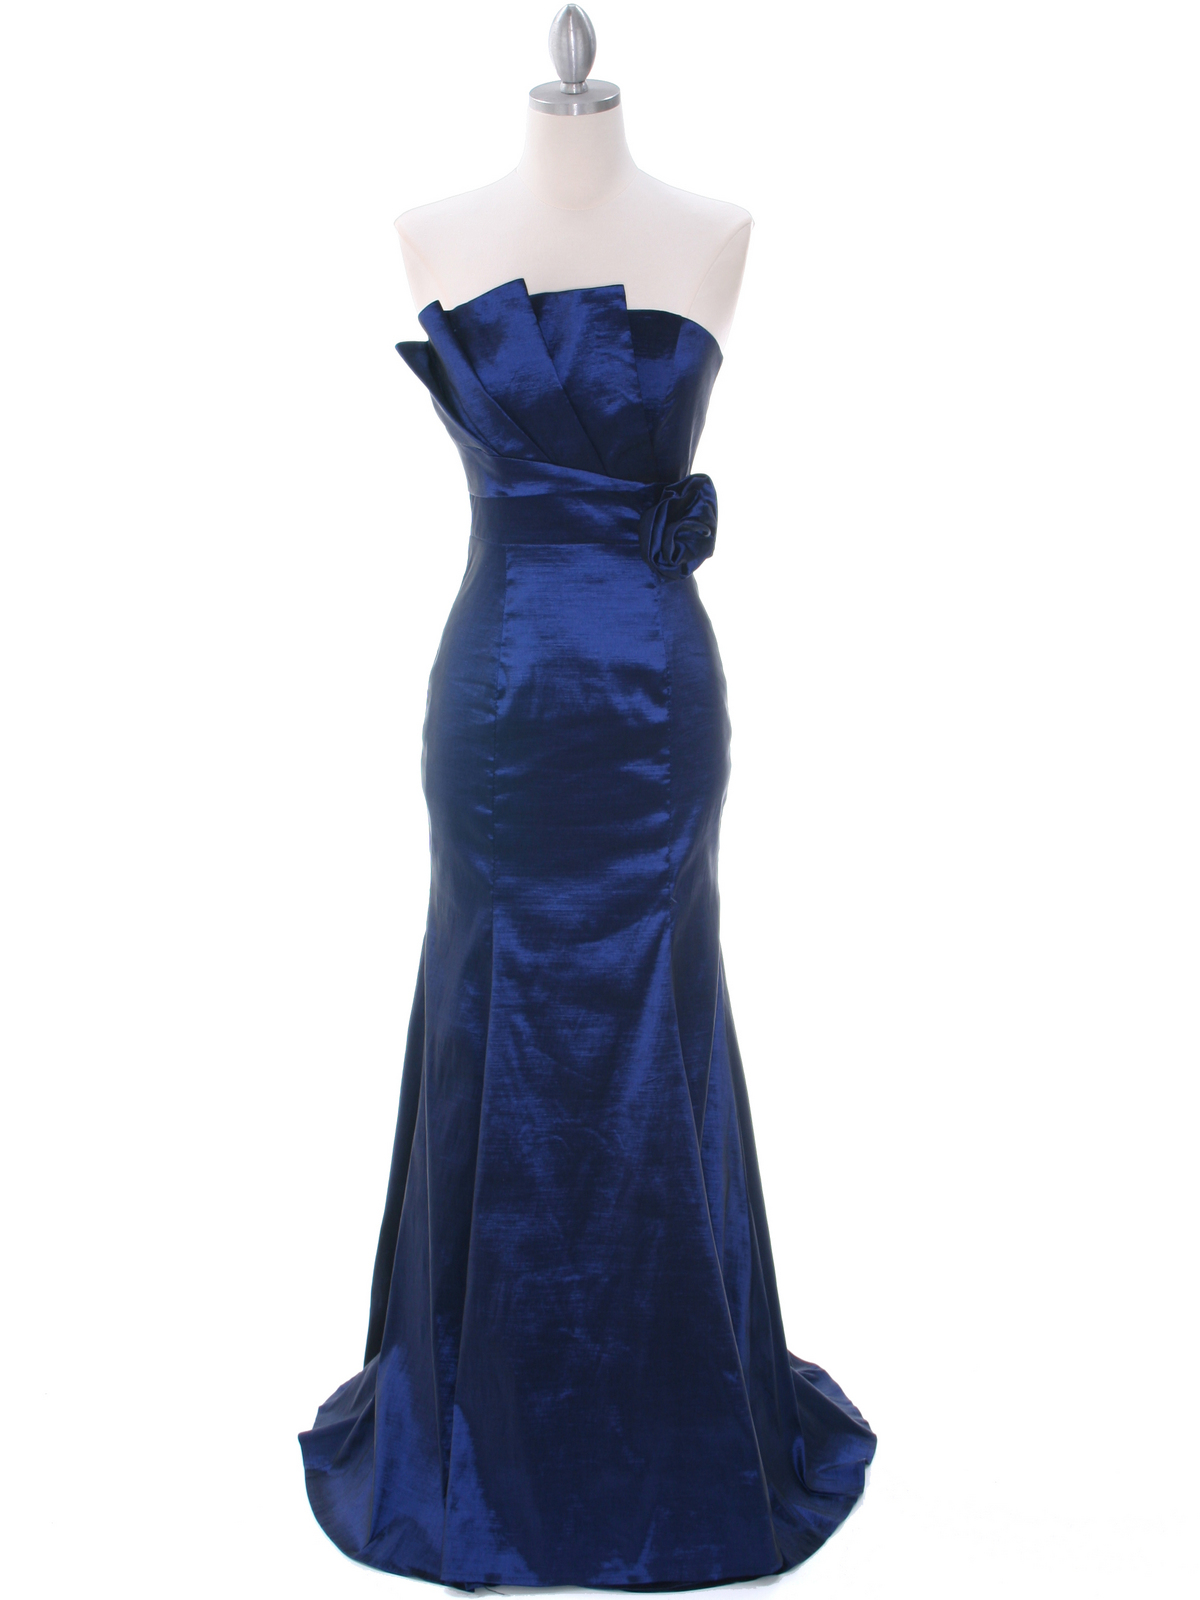 Navy Evening Gown | Sung Boutique L.A.